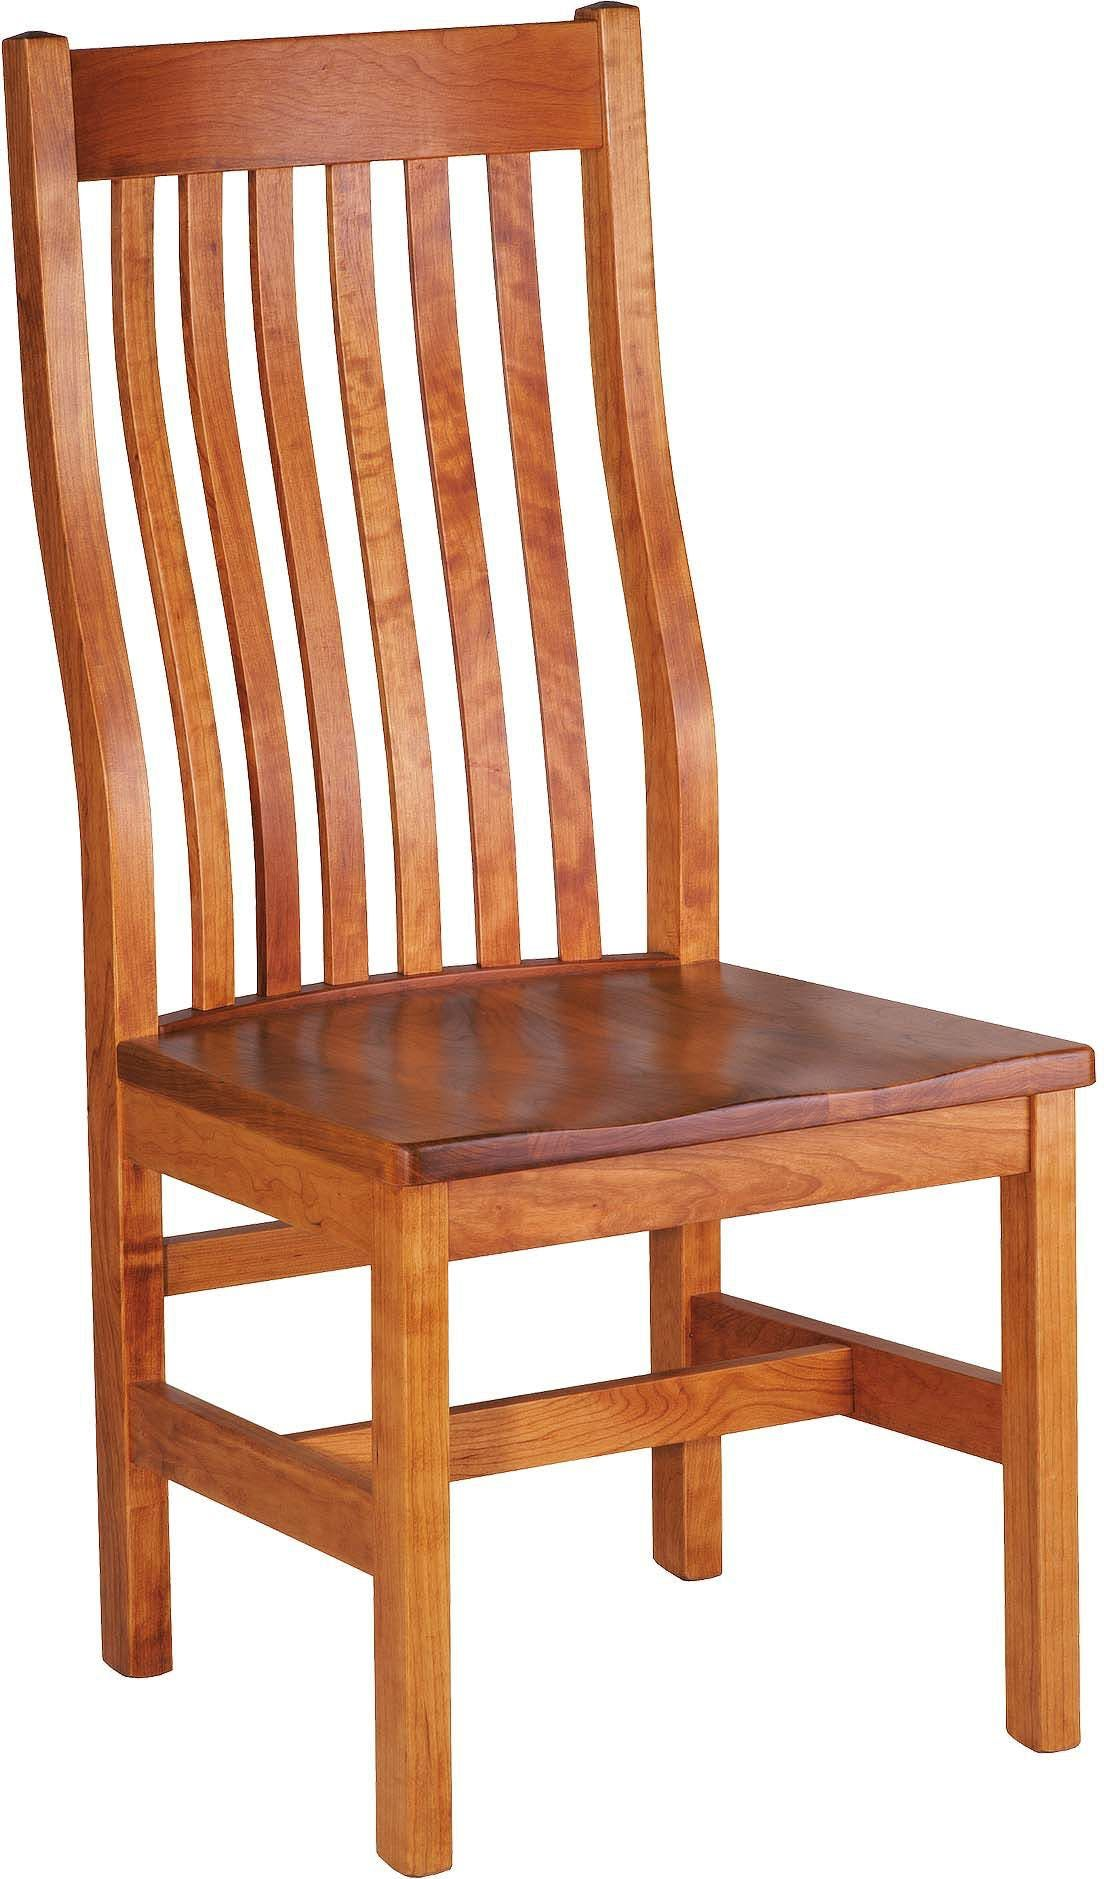 Marshall 81278 Side Chair Wood Seat Vienna Finish By Gat Creek